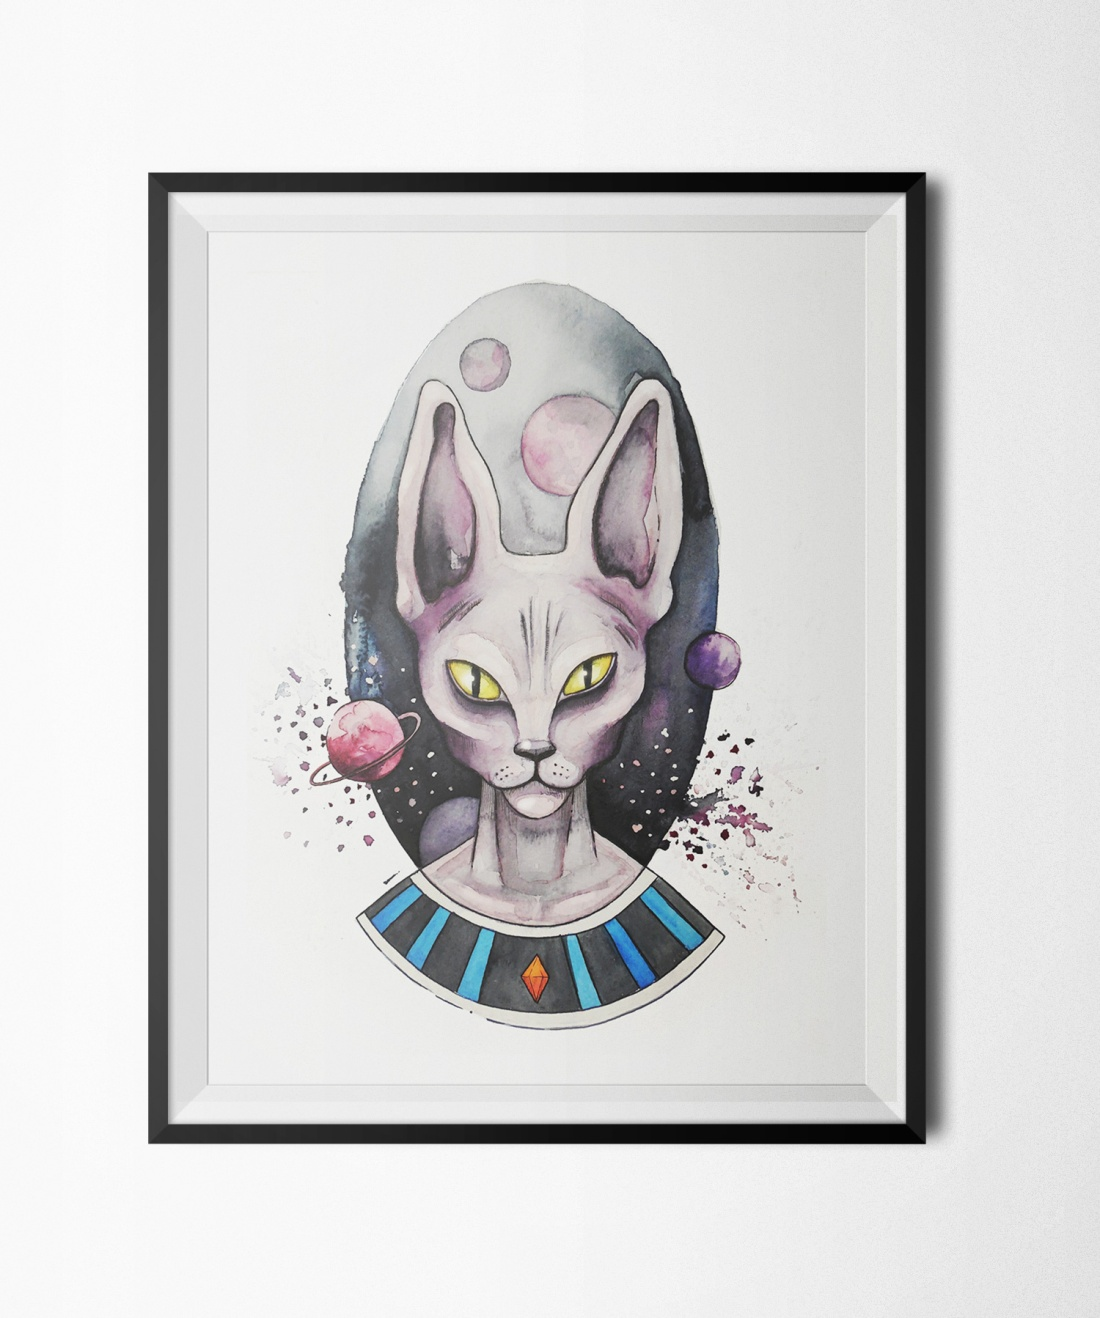 beerus-illustration.jpg